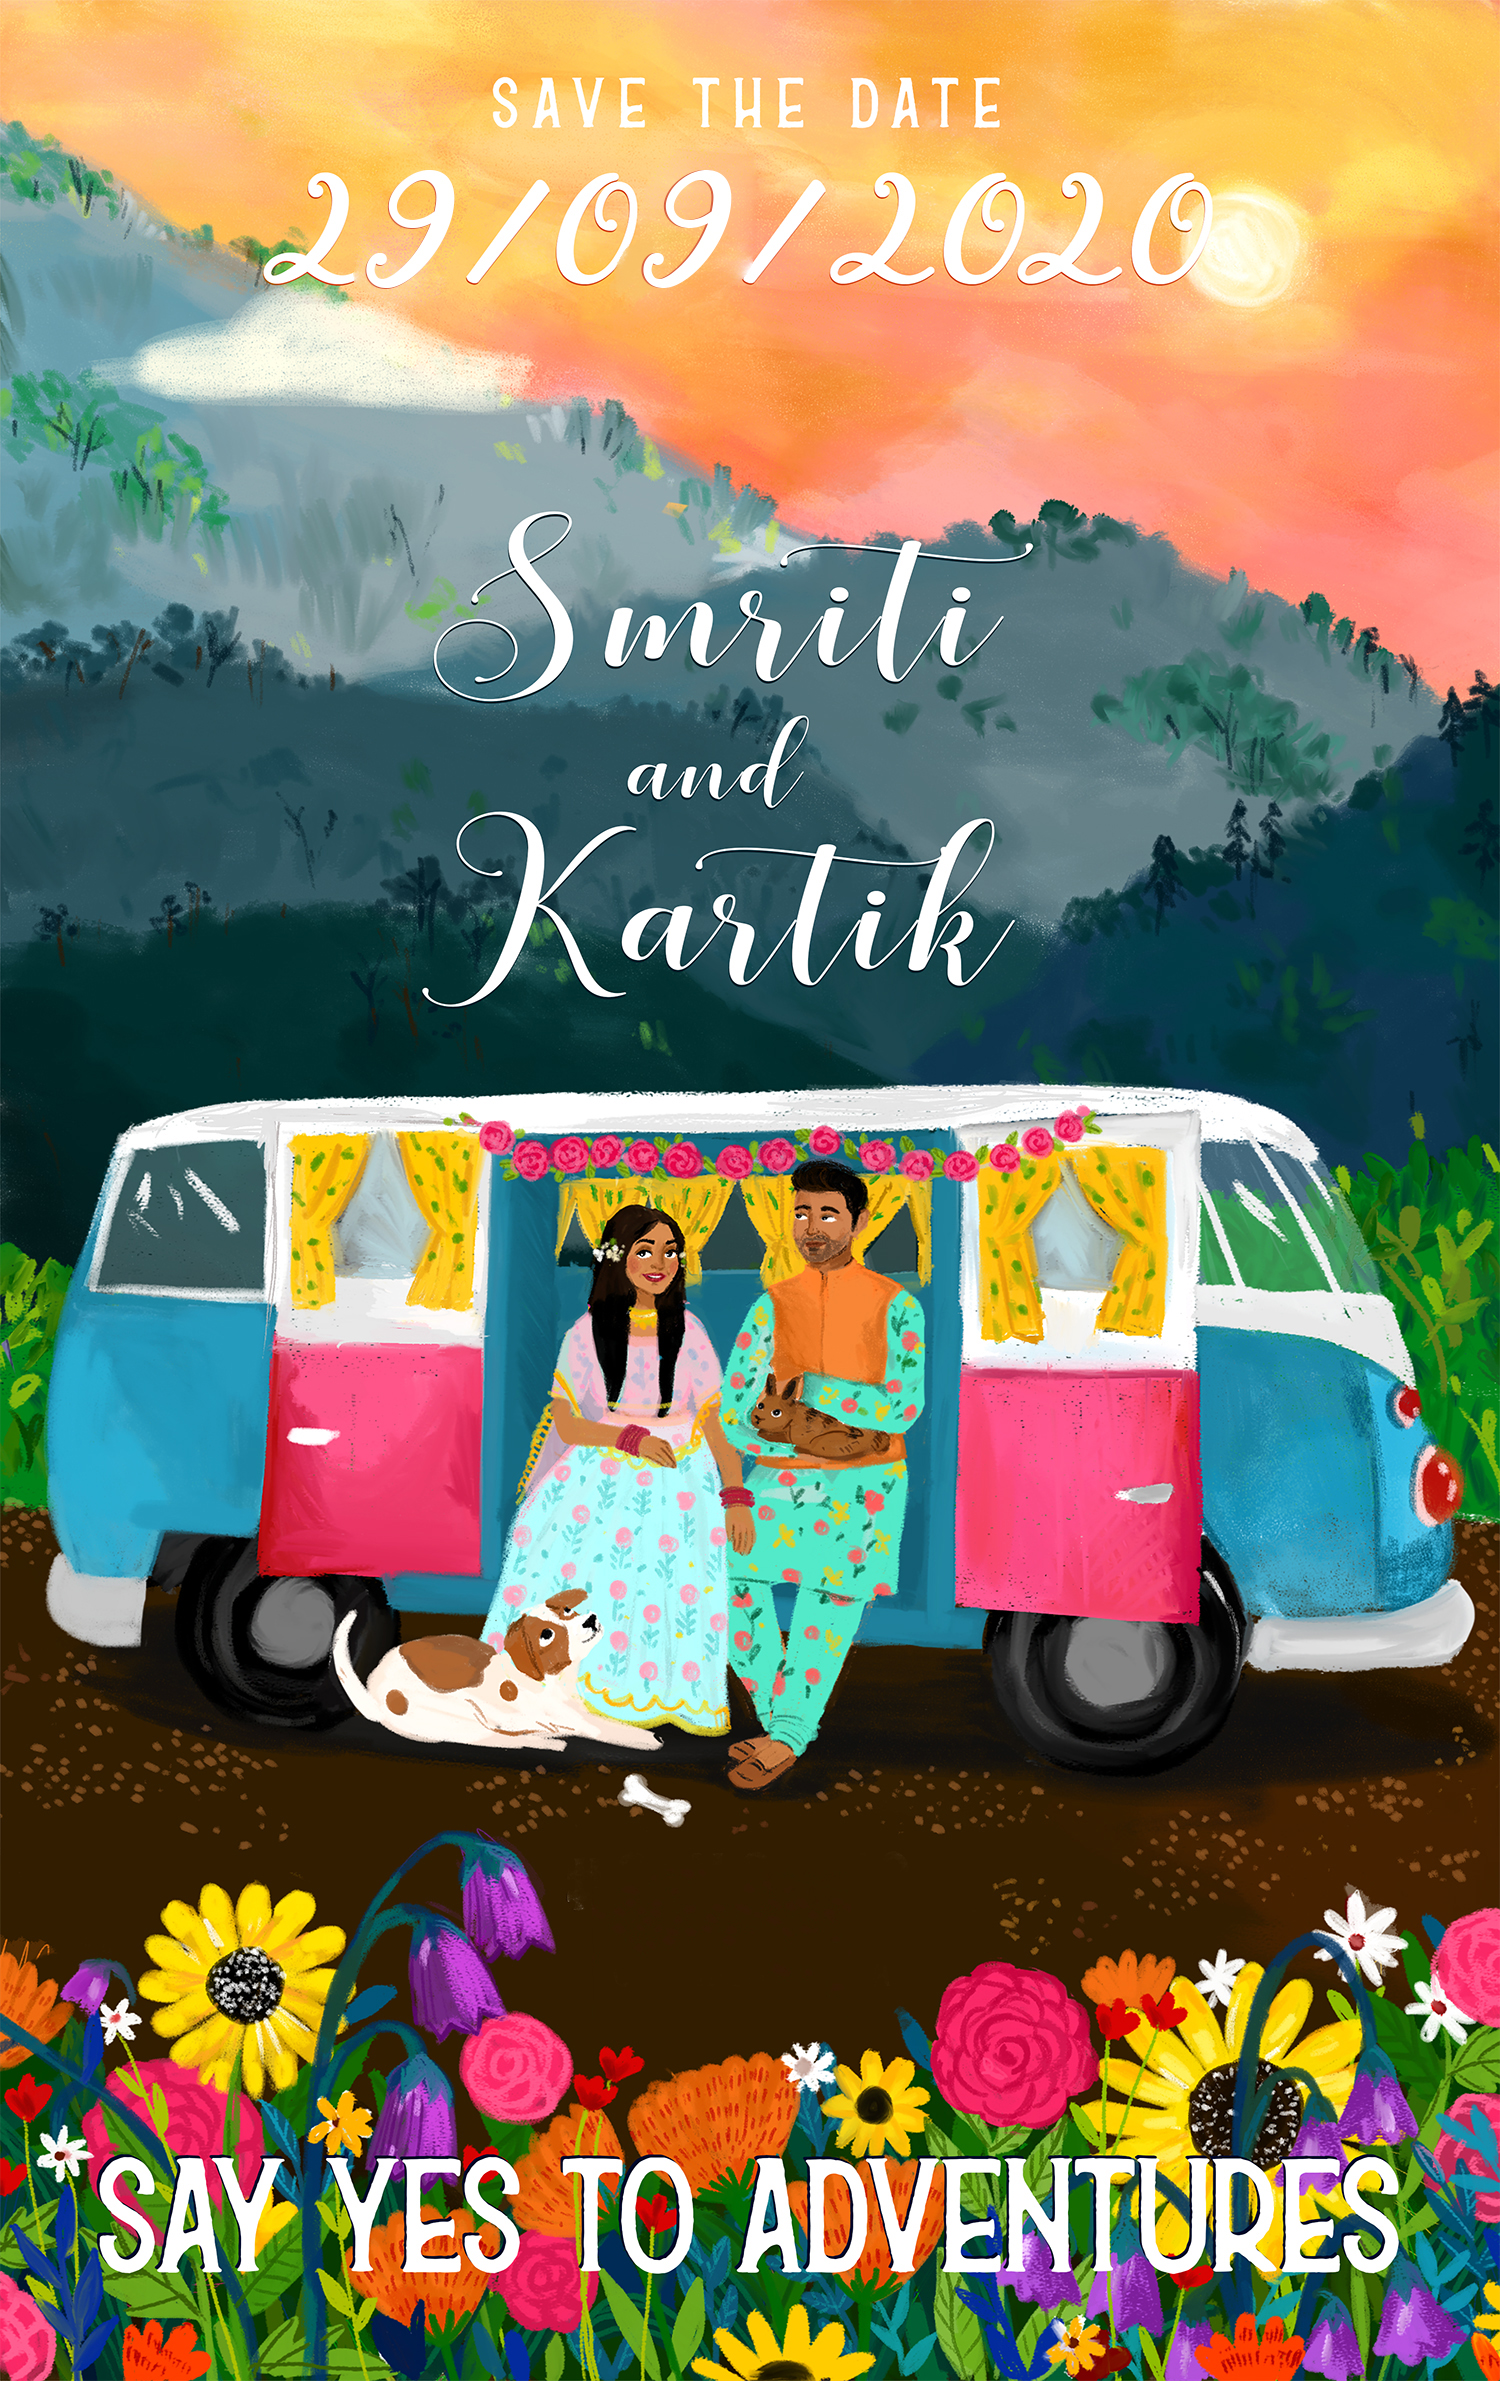 Save the Date for Smriti and Kartik depicting and their love for their pets, each other and the great outdoors.